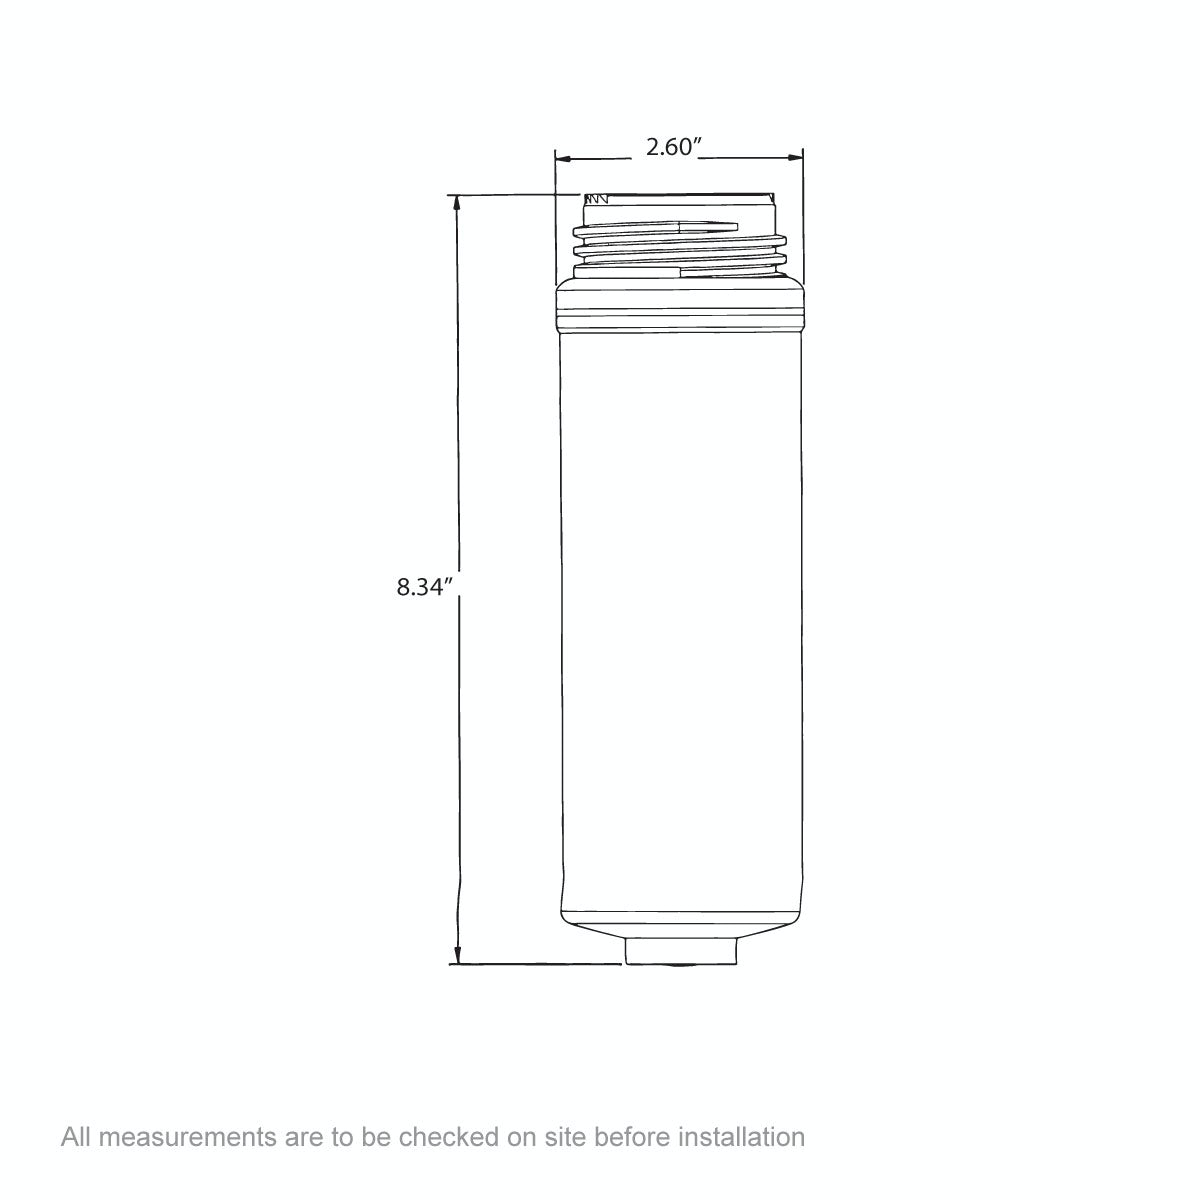 Dimensions for Ready Hot Replacement filter